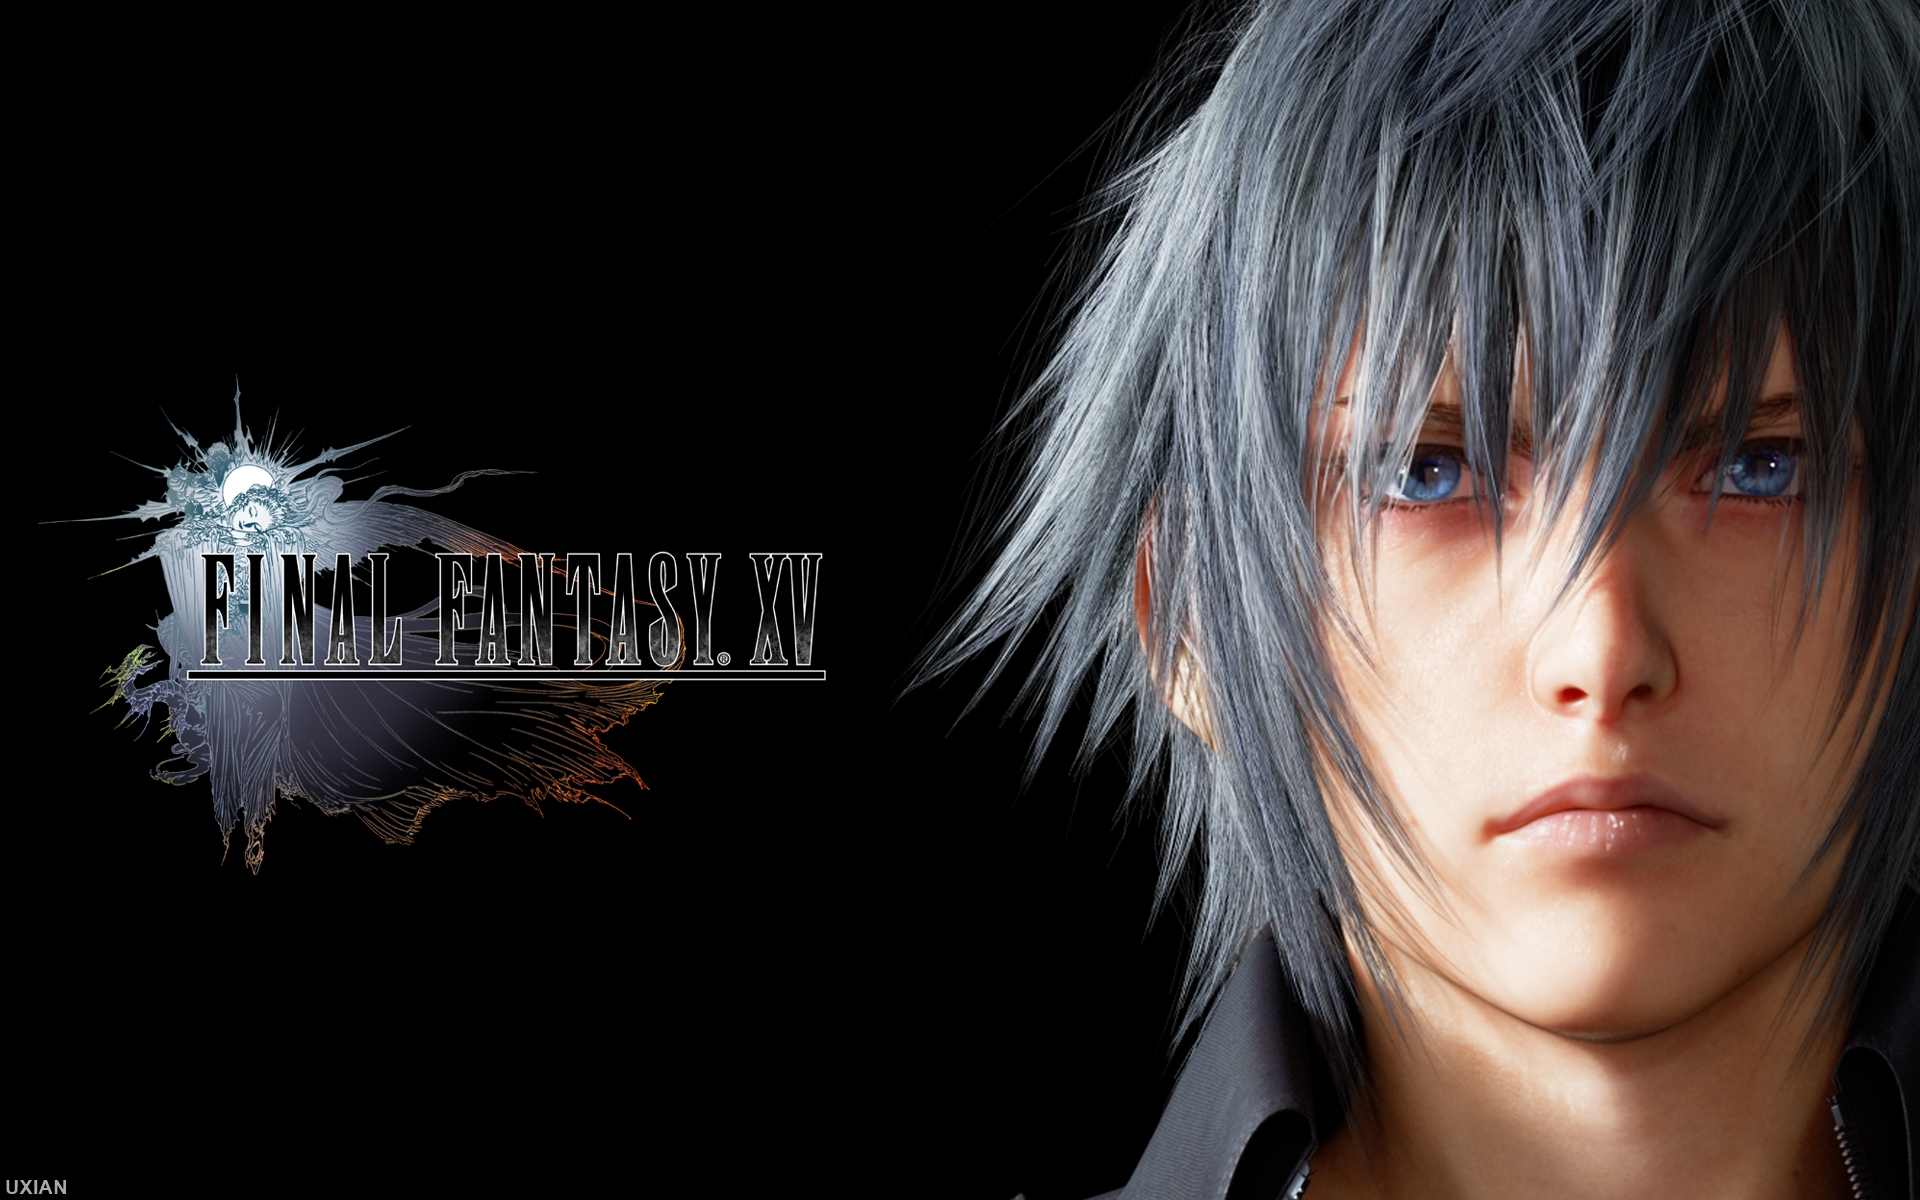 'Final Fantasy XV' PS4 & Xbox One Release Date News: Developers Set to Launch Demo : In the news : BREATHEcast